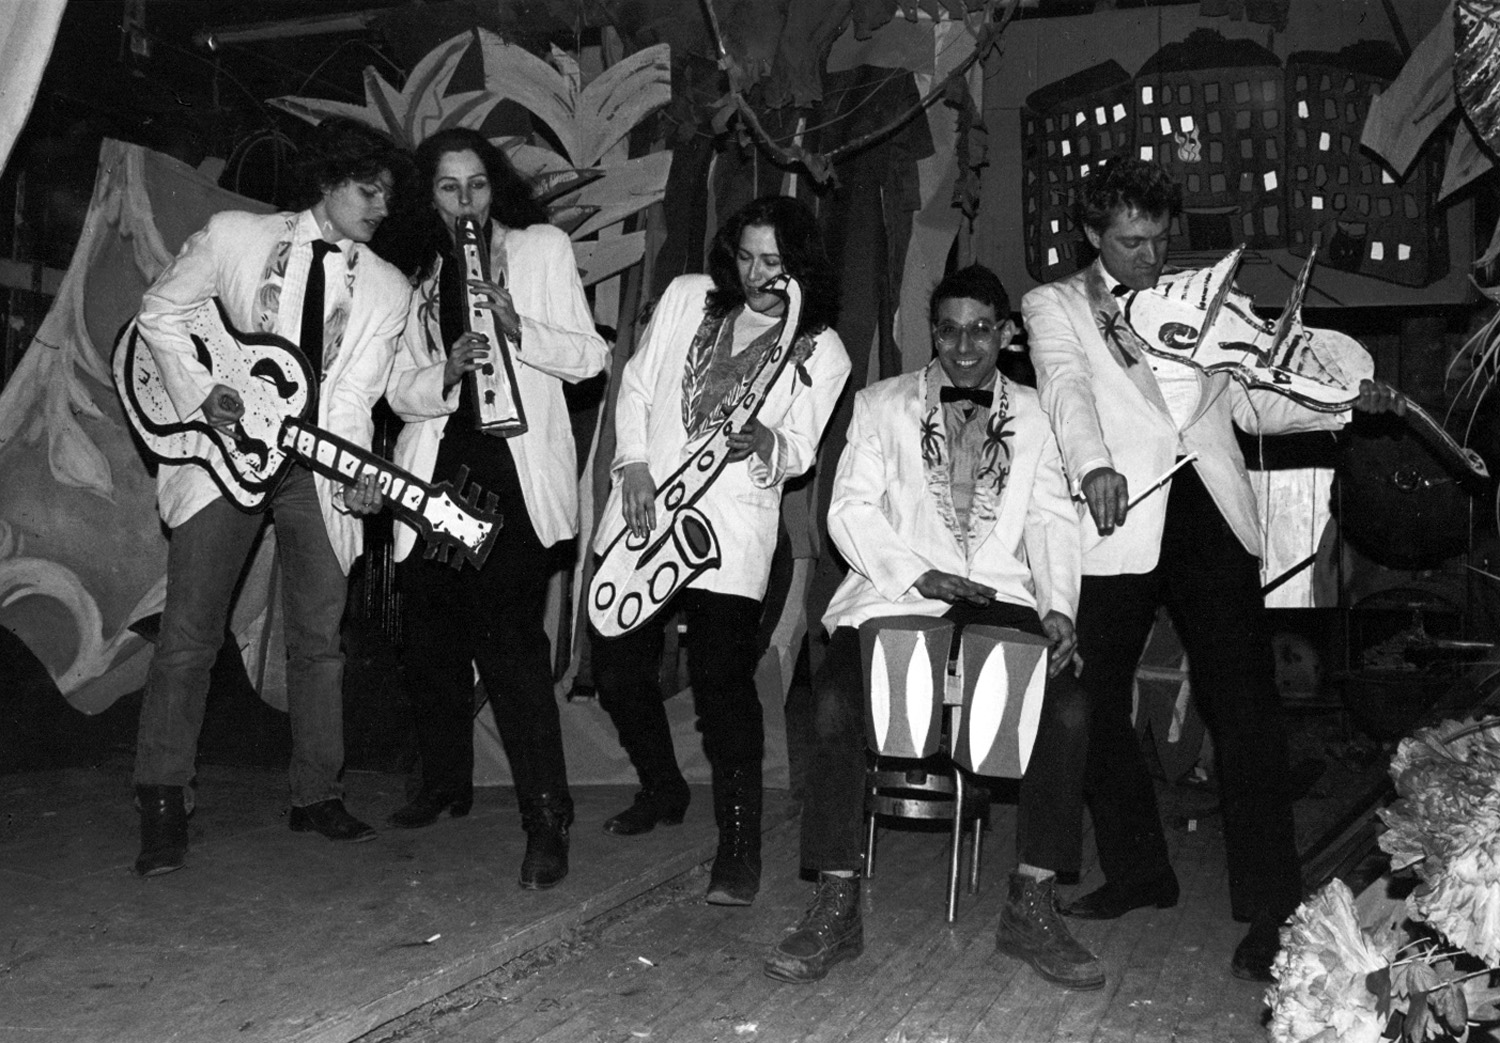 ABC No Rio's Cardboard Band performing at The Isle of Negative Utopia show at The Kitchen, 1983. (left to right) Bebe Smith, Kiki Smith, Ellen Cooper, Bobby G, and Walter Robinson. Photo by Christy Rupp